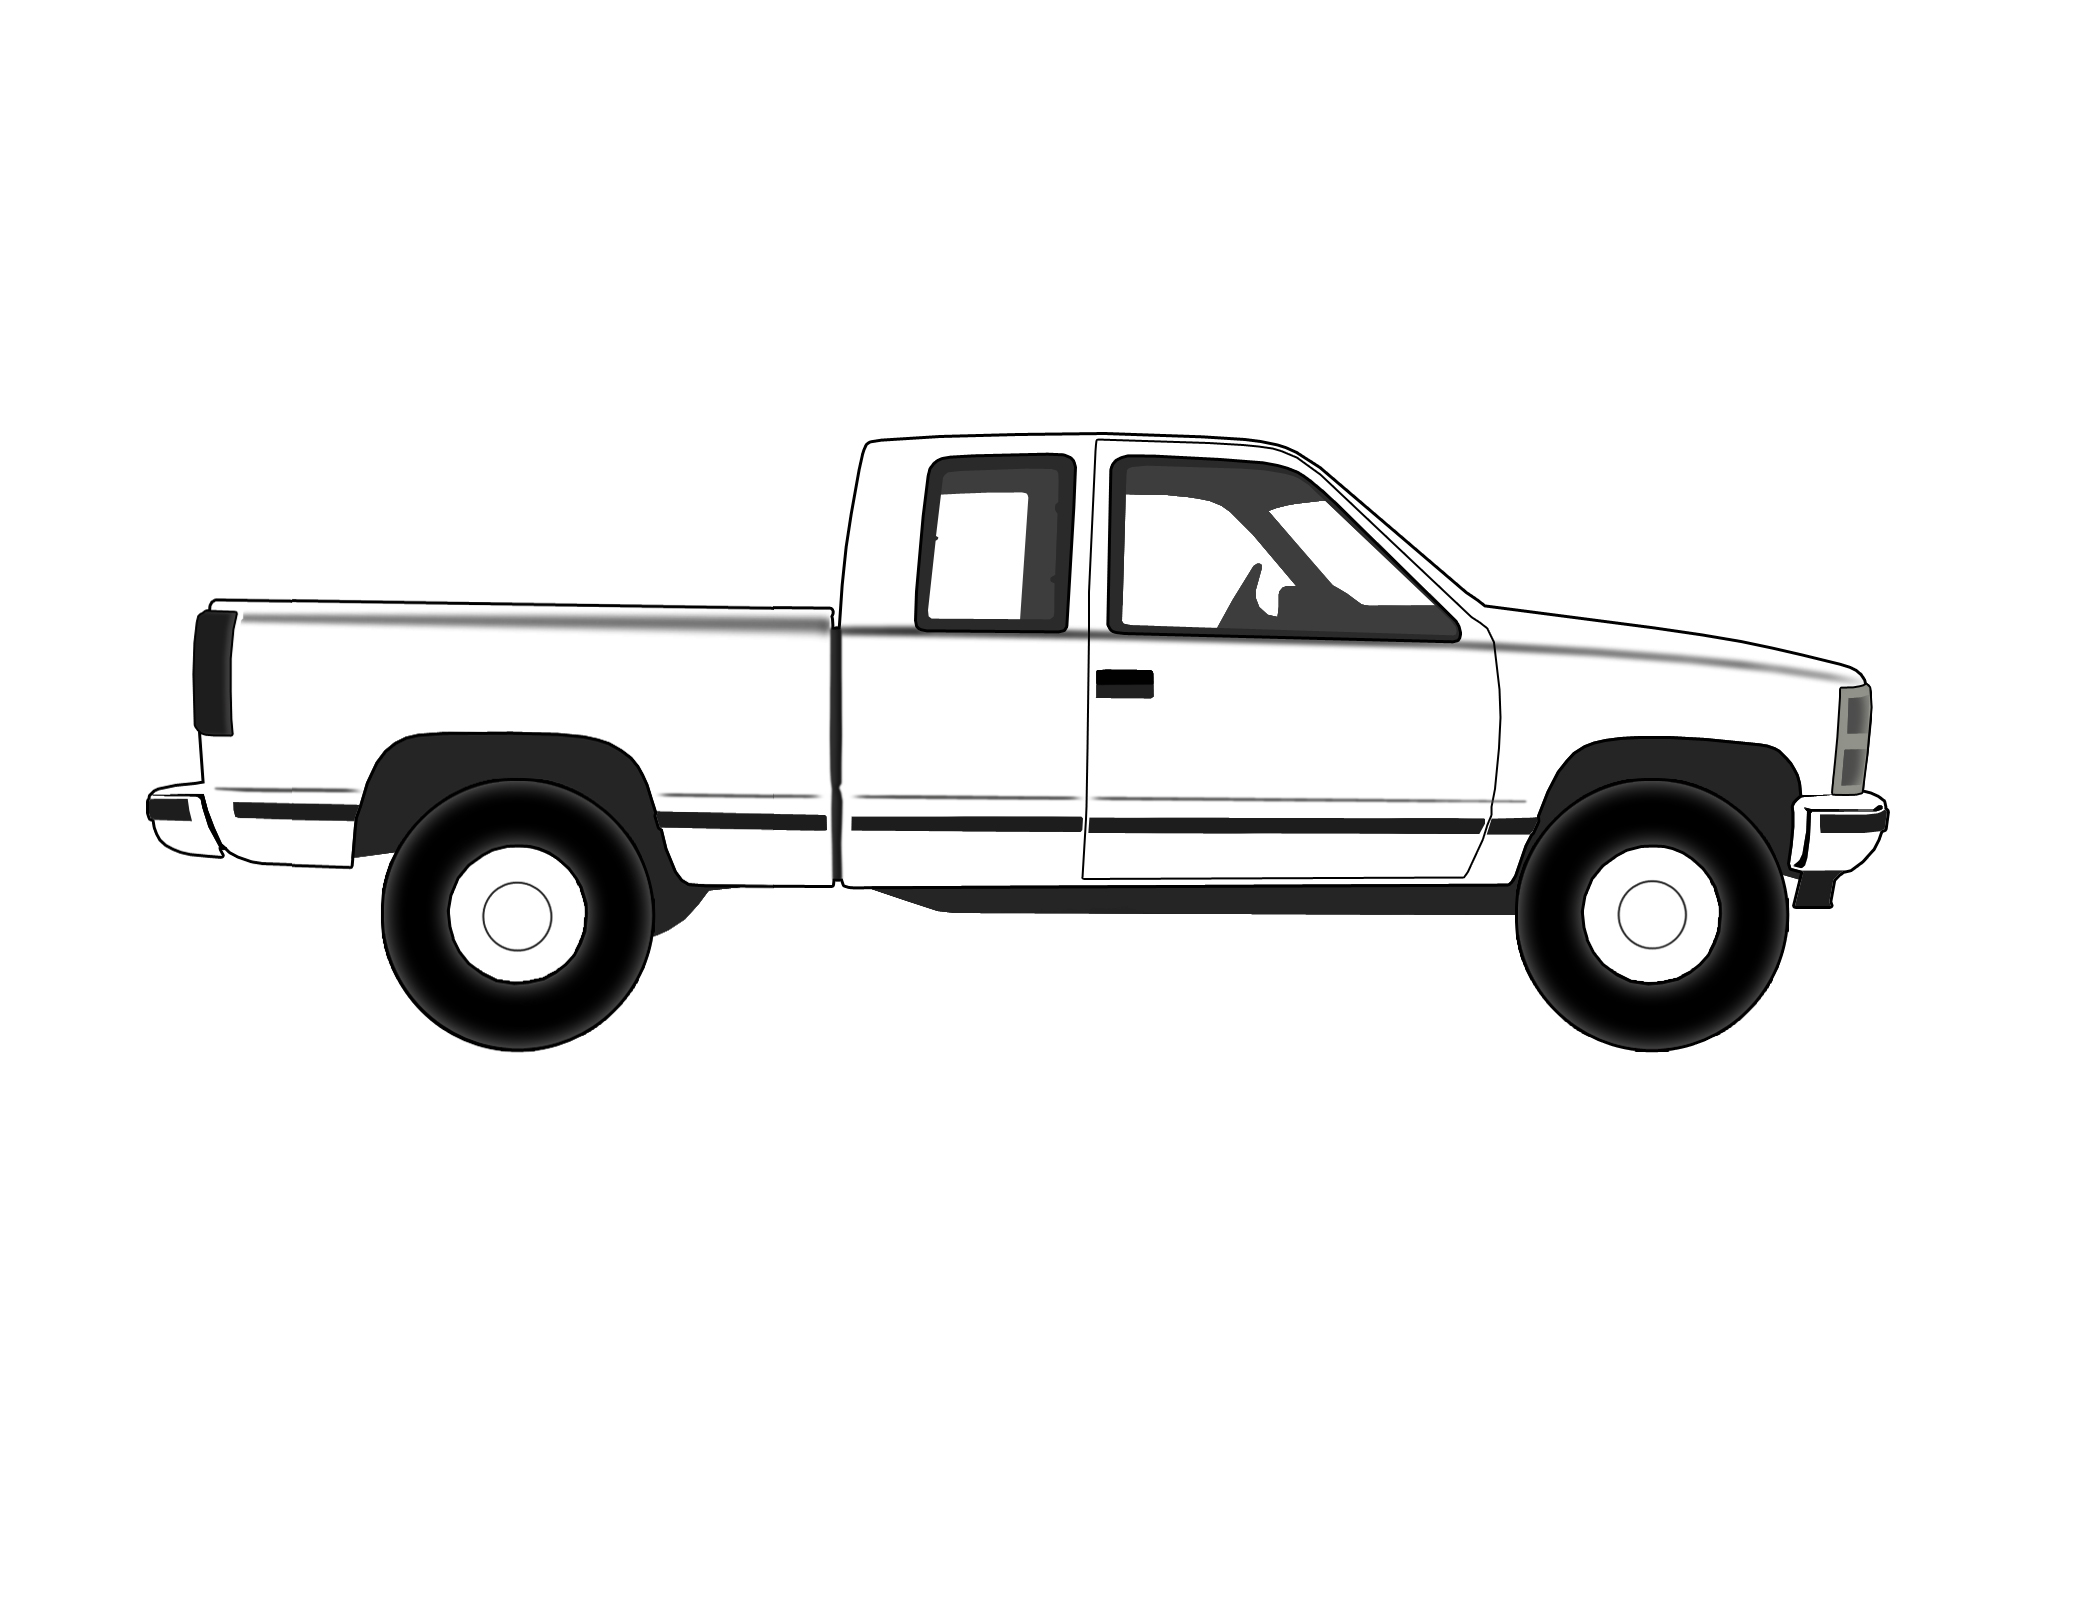 Chevrolet pickup truck side view free clipart clipart freeuse stock Free Chevy Truck Cliparts, Download Free Clip Art, Free Clip Art on ... clipart freeuse stock